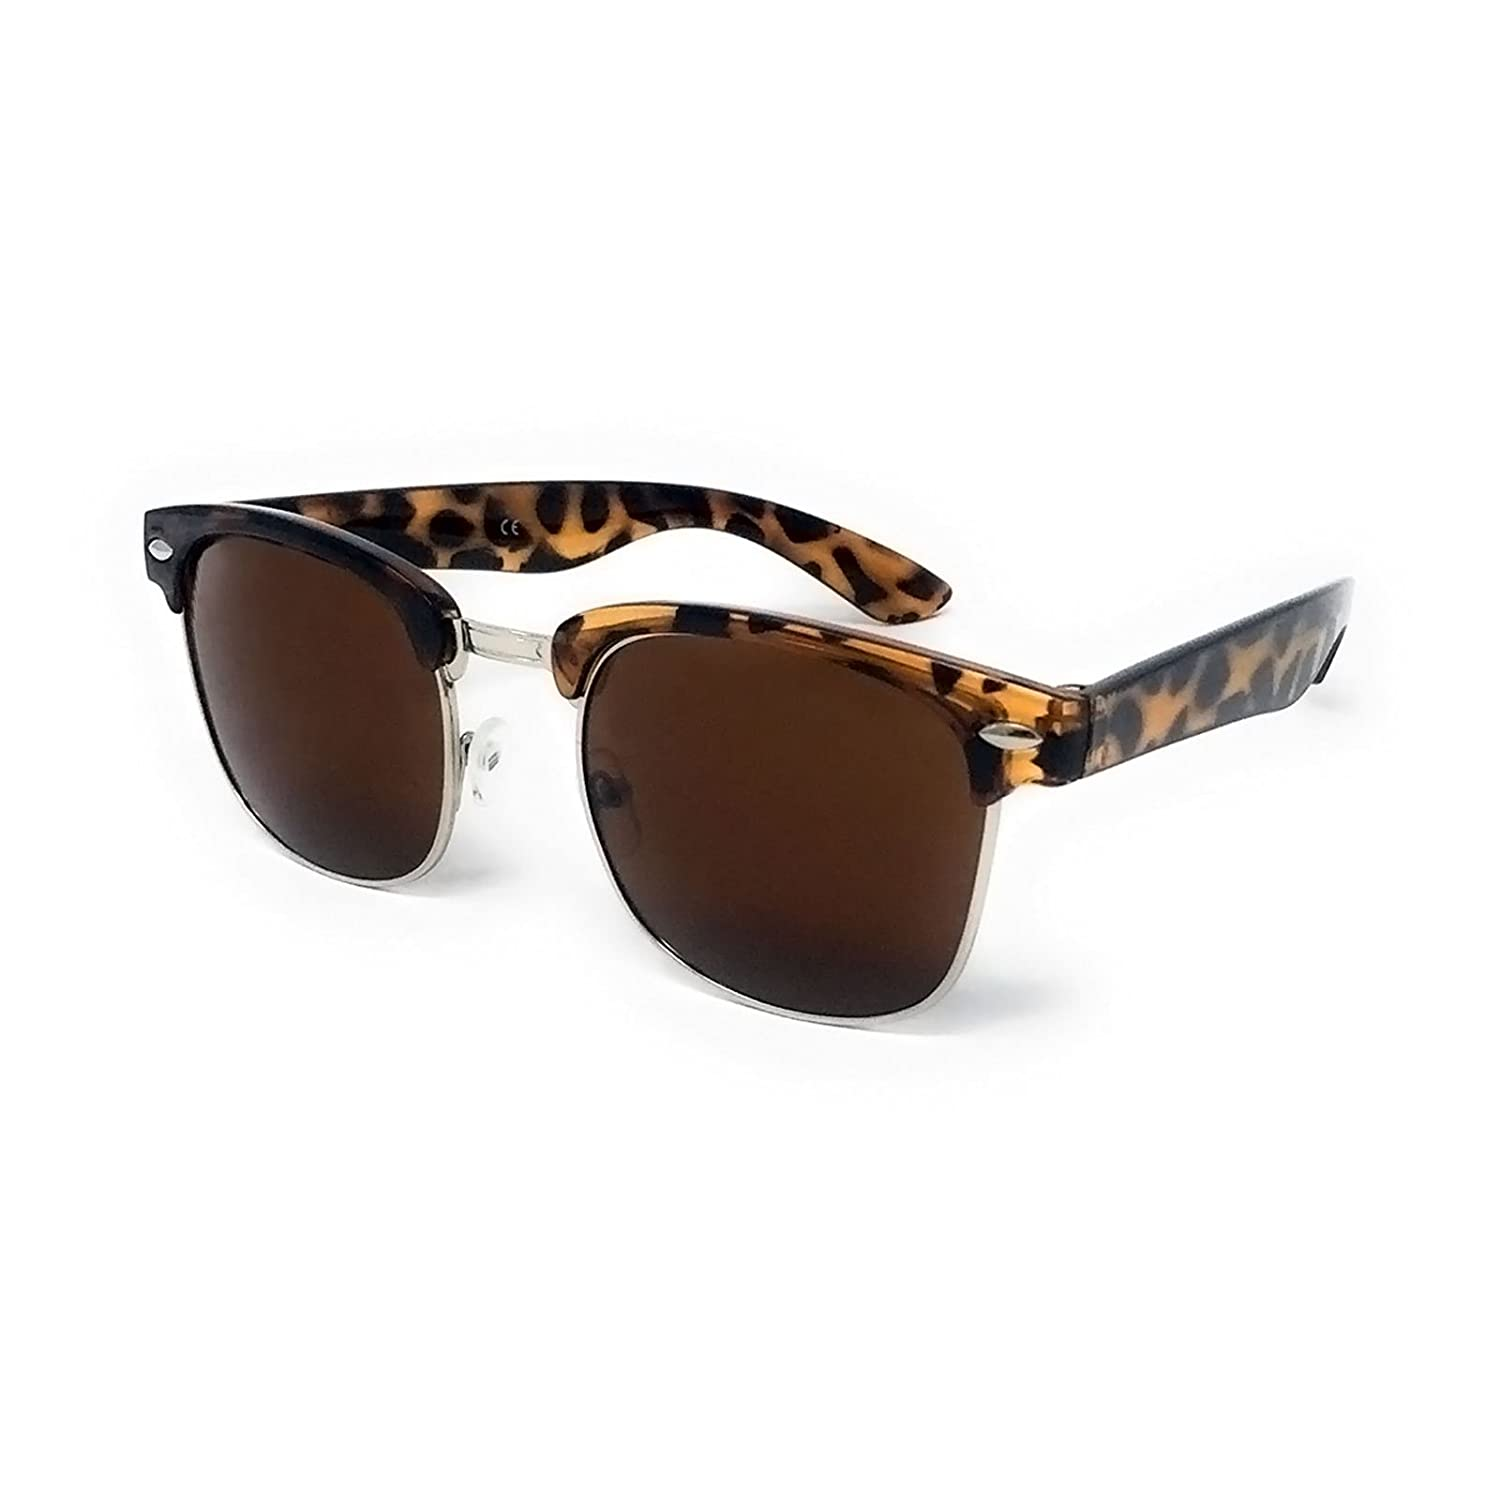 1950s Style Sunglasses - Vintage Retro Unisex Shades 100% UV400 Protective Silver Mirrored Lens]